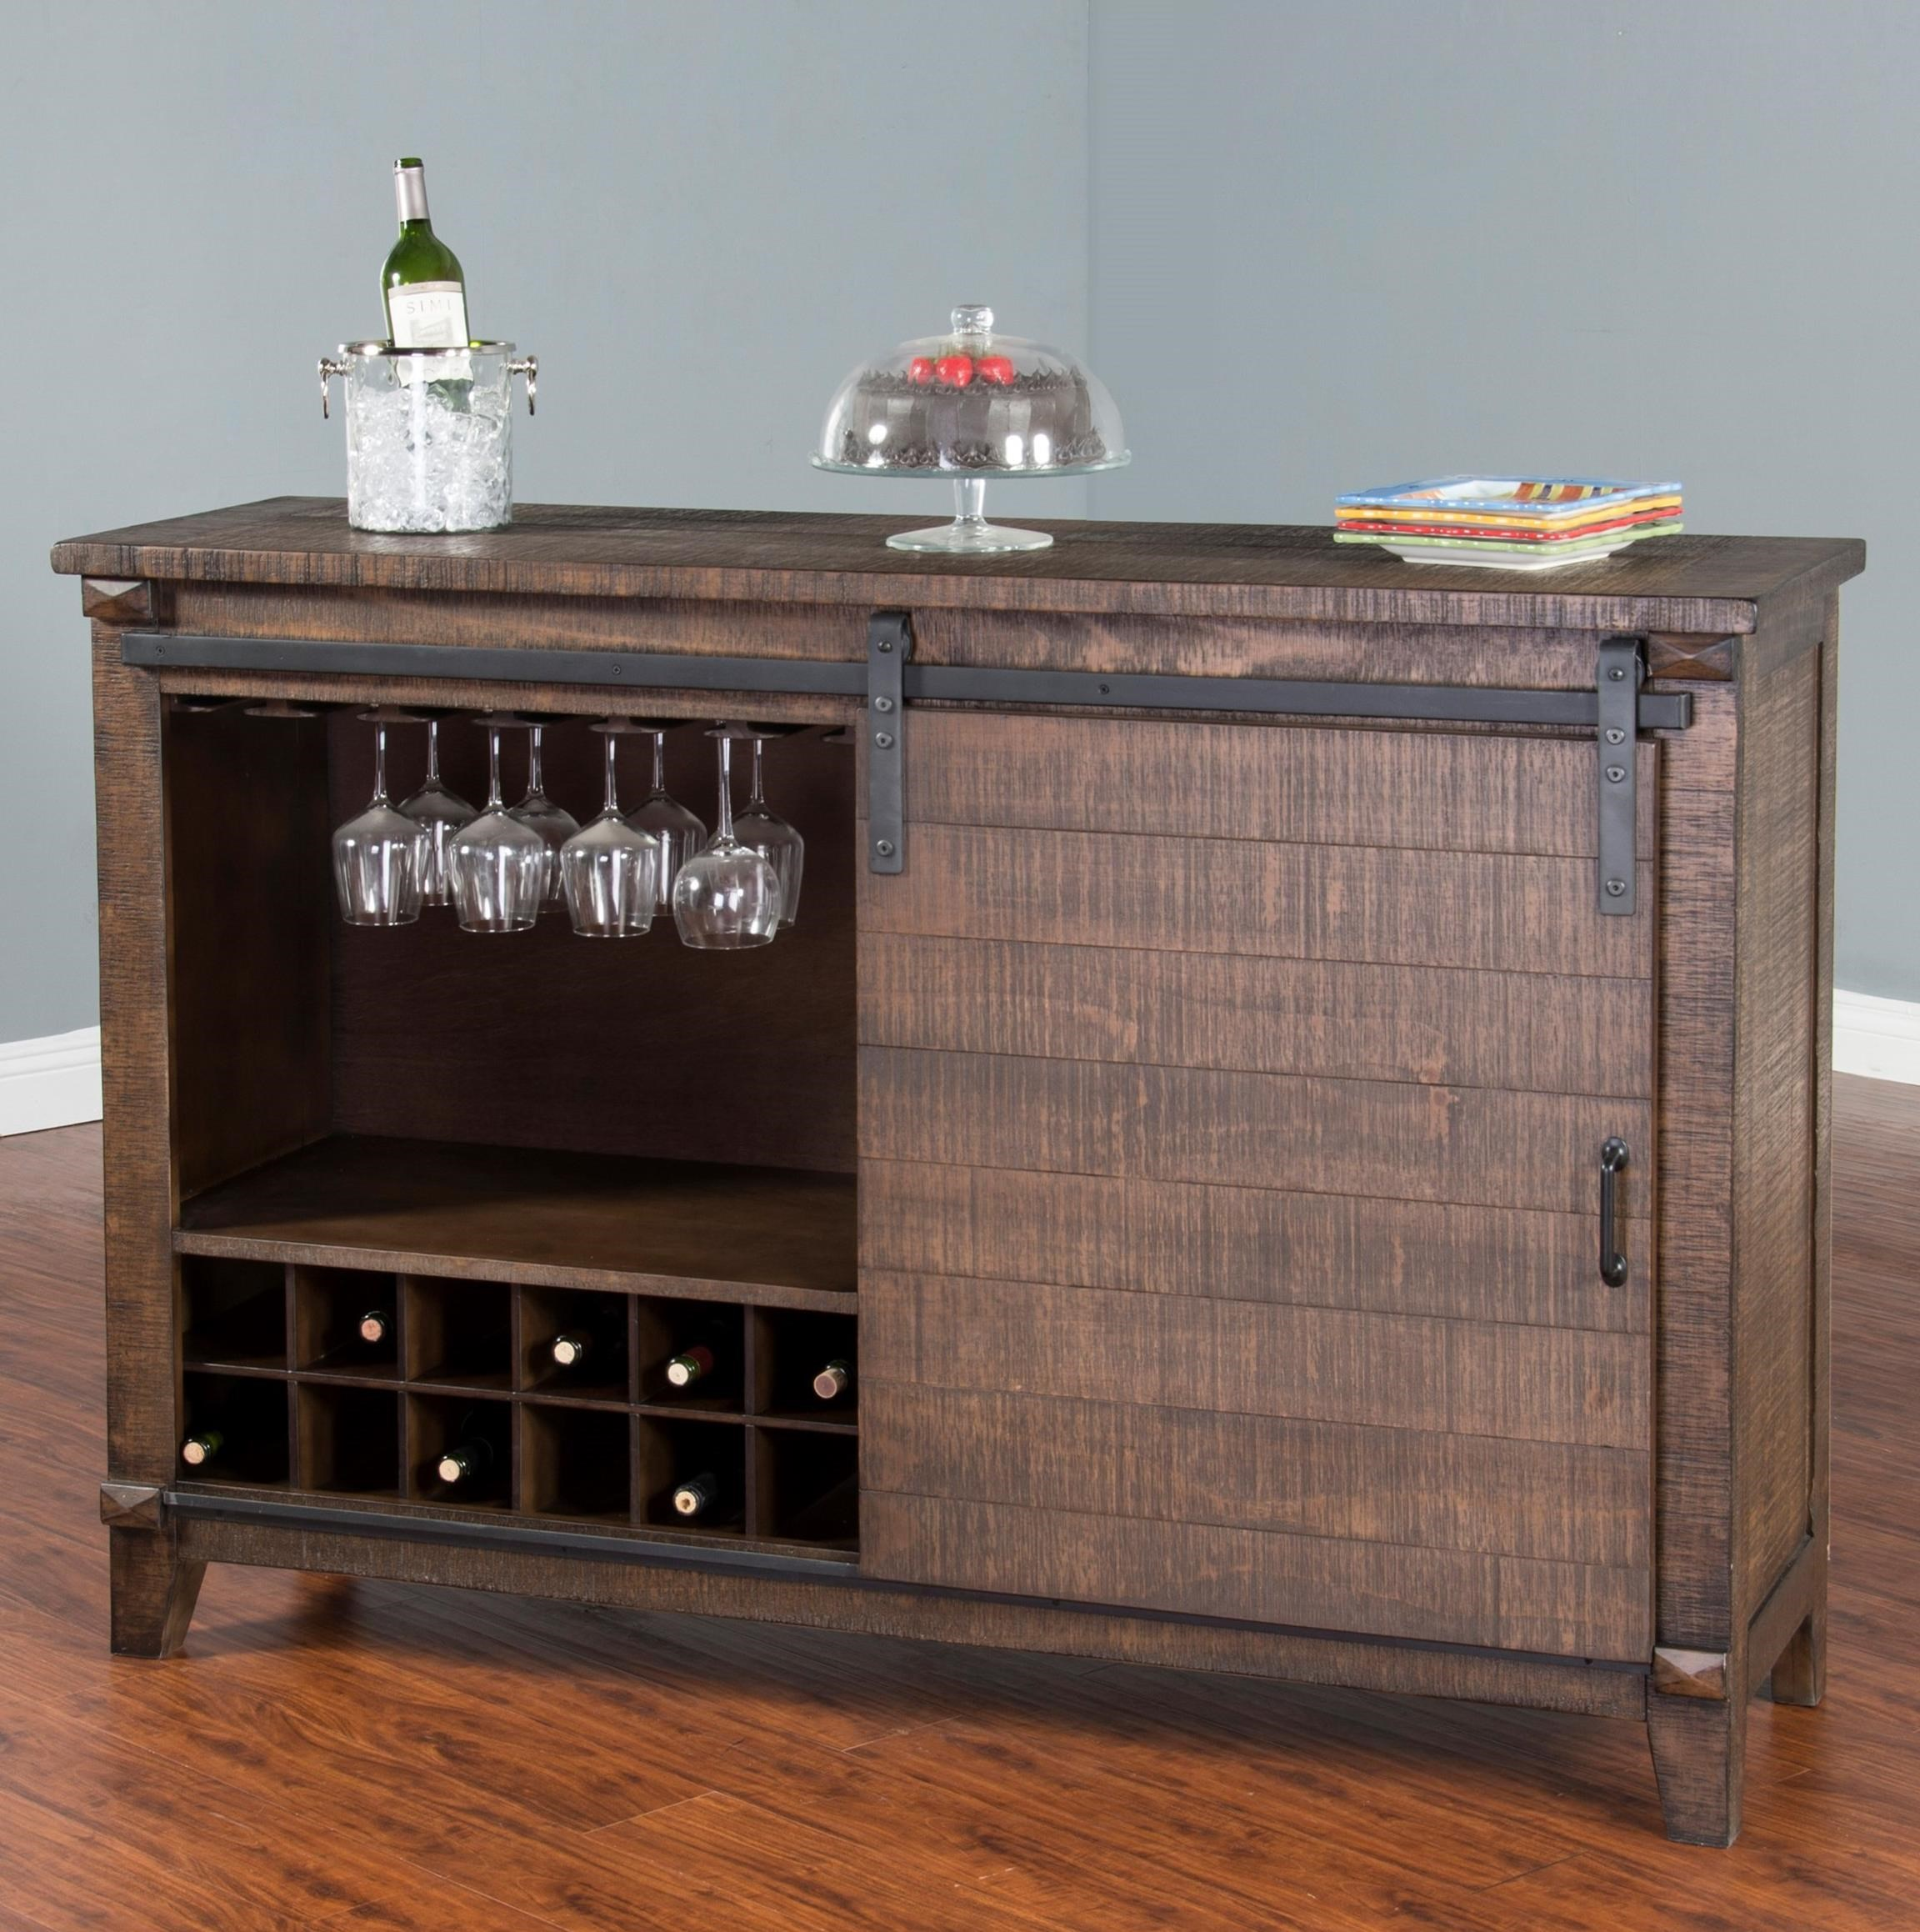 Sunny designs homestead 1936tl w server w wooden barn for Homestead furniture and appliances